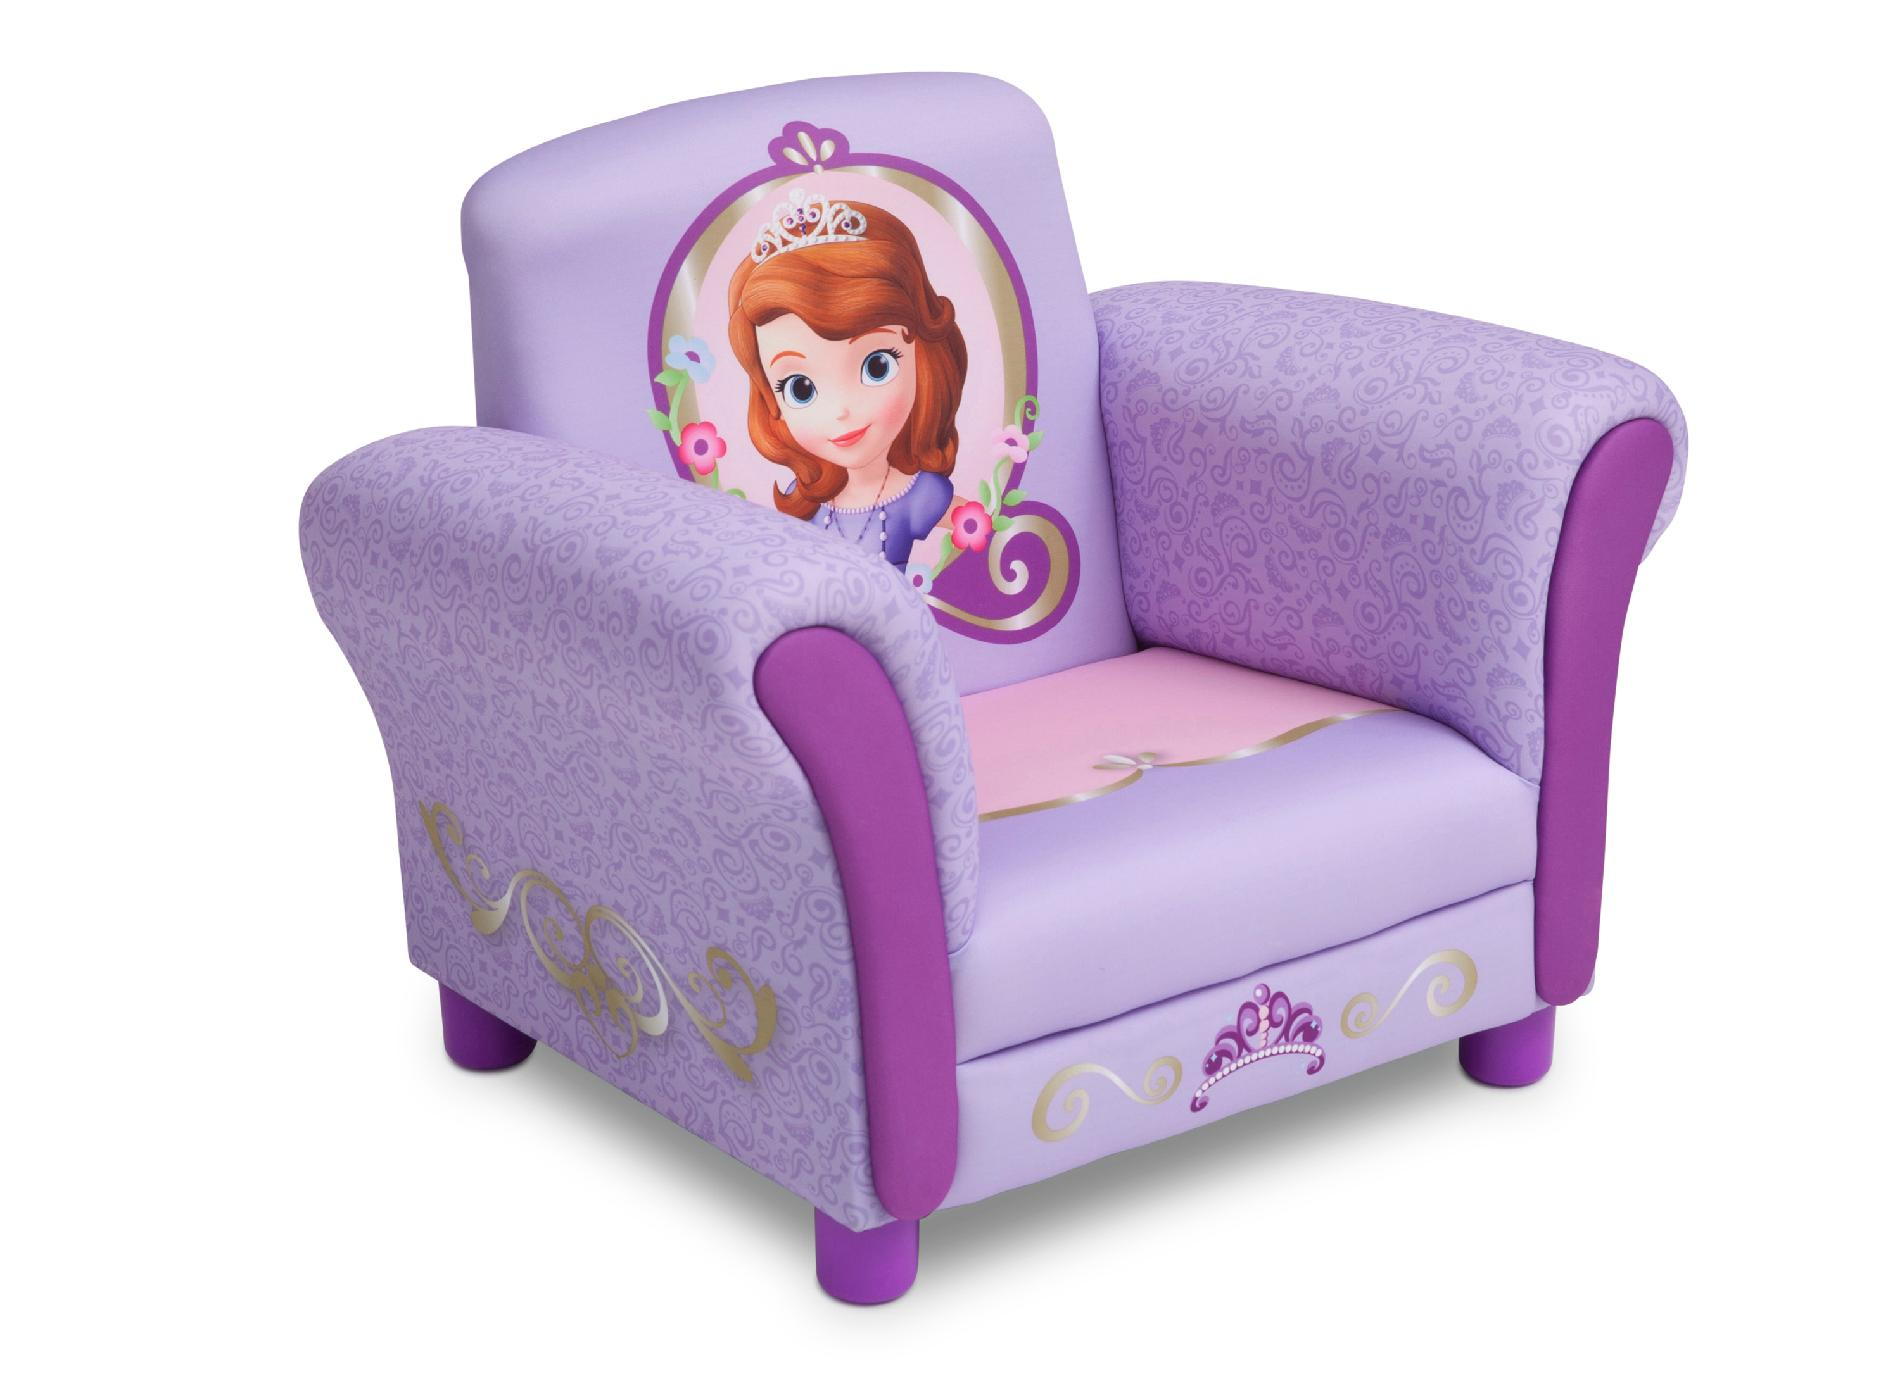 Princess Chairs For Toddlers Delta Children Disney Sofia The First Upholstered Chair